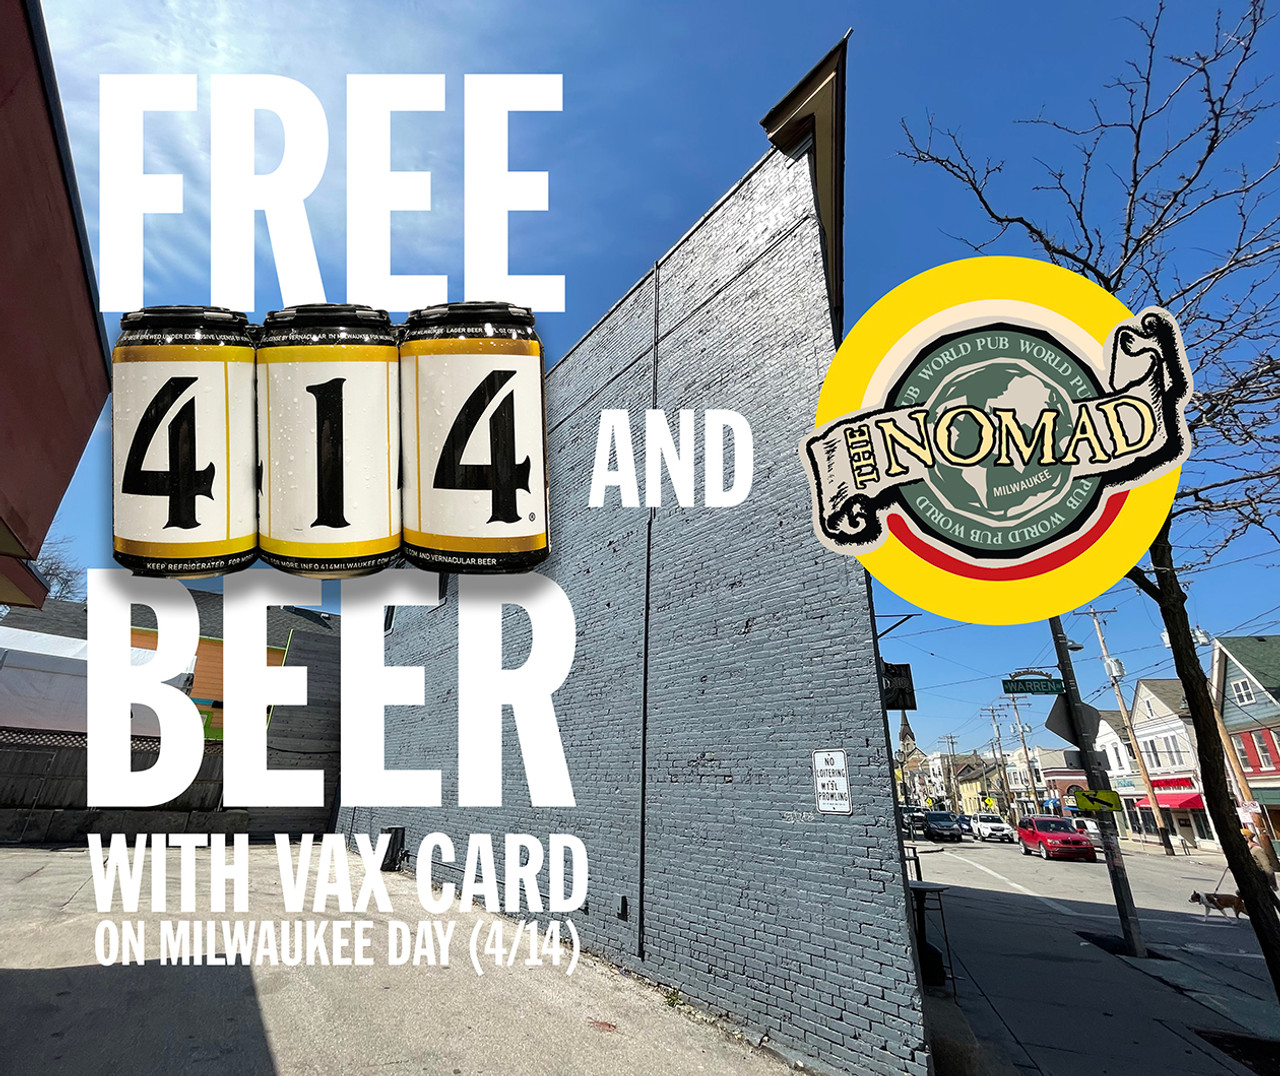 FREE 414 BEER WITH VAX CARD AT THE NOMAD